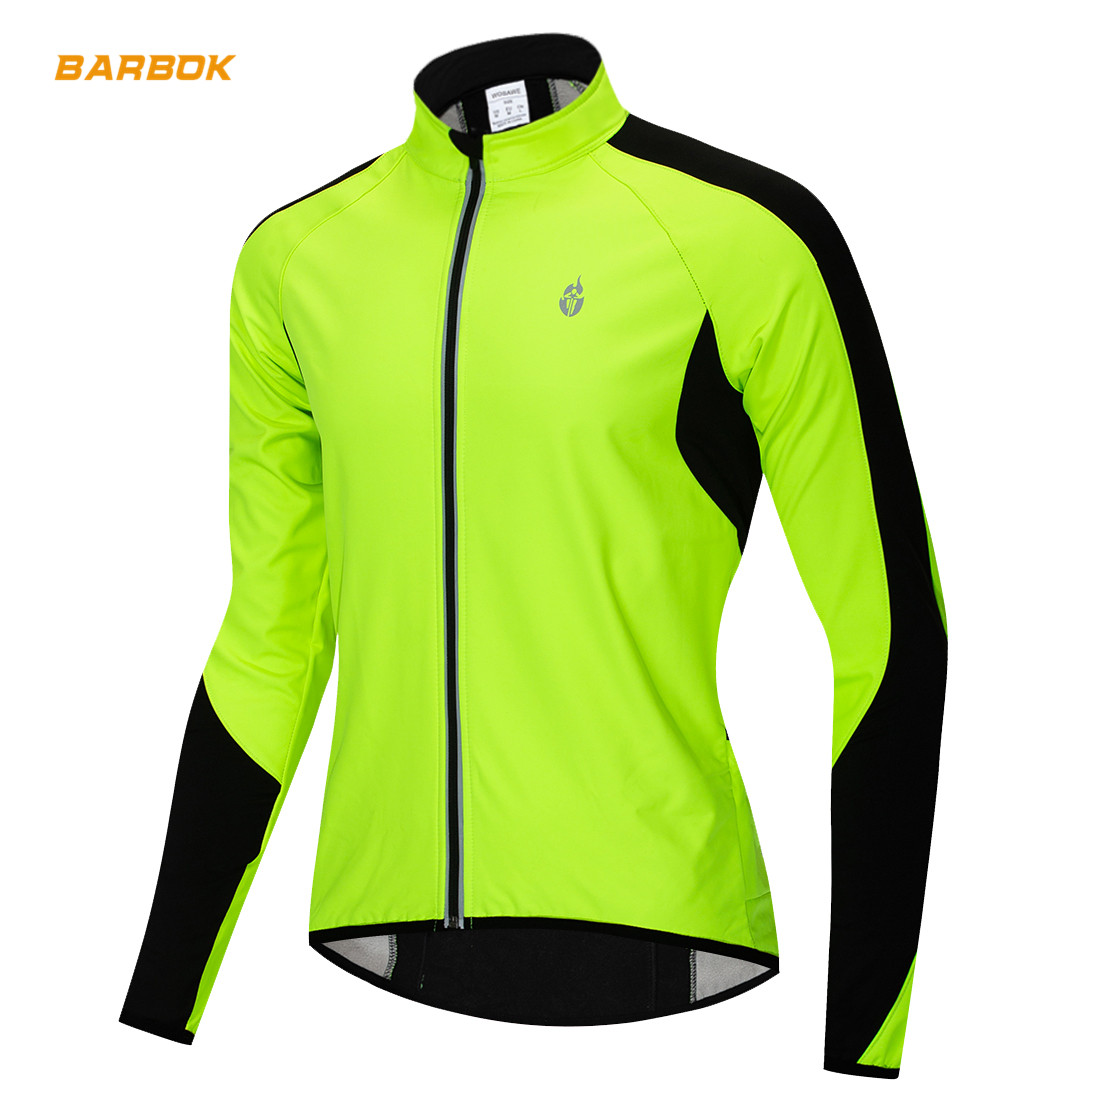 WOSAWE Winter Thermal Fleece Motorcycle Jackets Men High Visibility Windbreaker Warm Up Water Resistence Motocross Clothes in Jackets from Automobiles Motorcycles